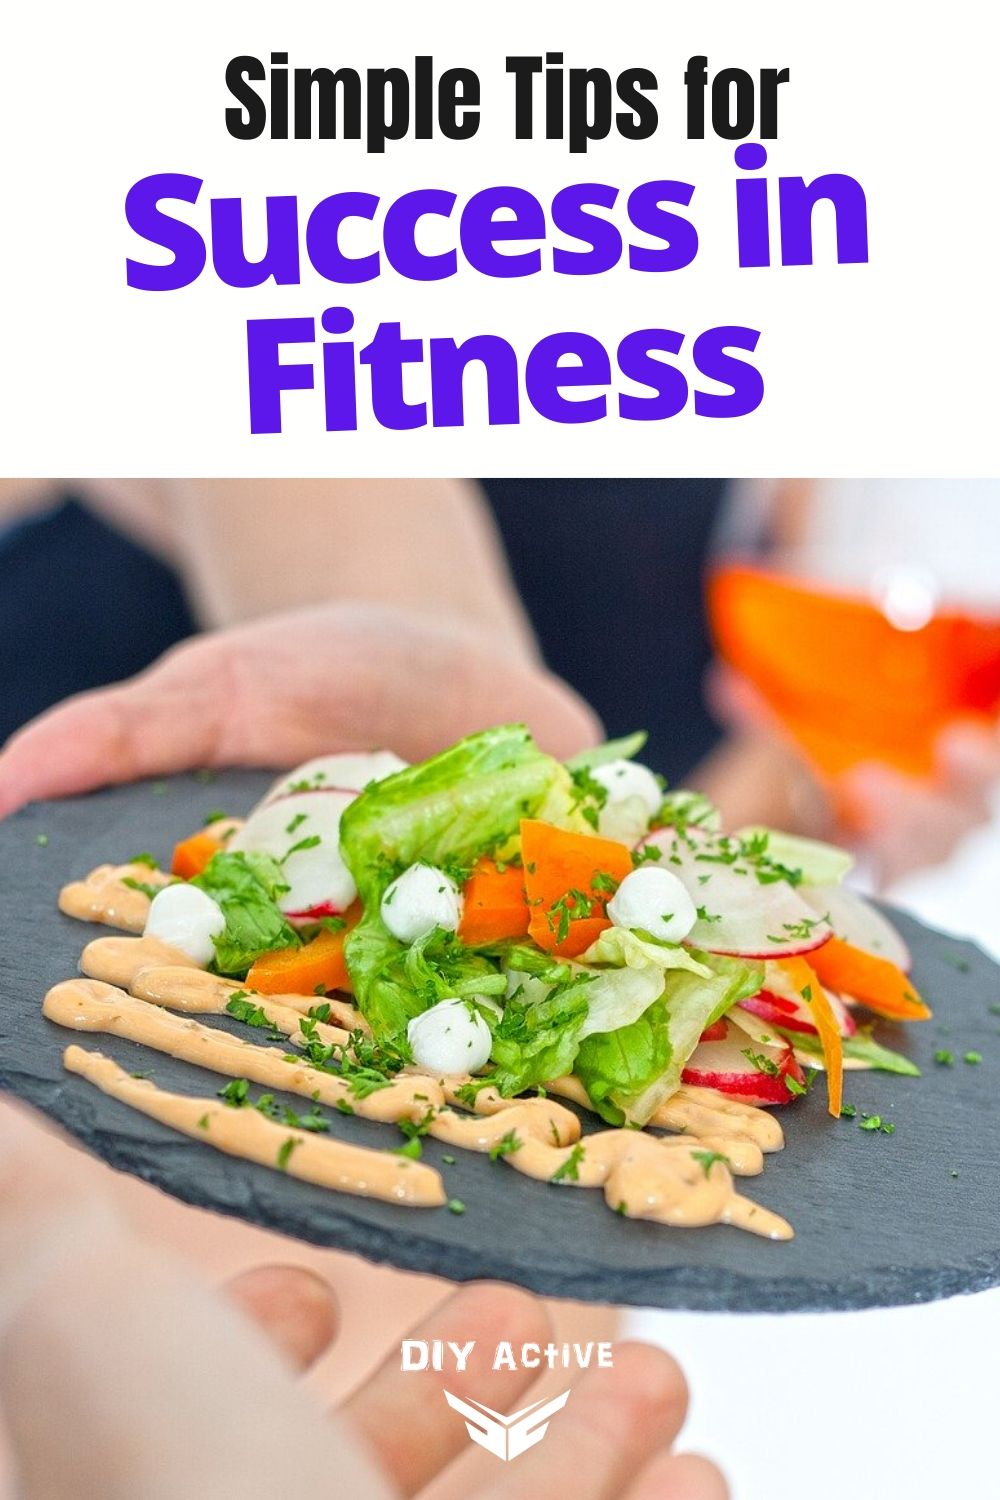 Simple Tips for Success in Fitness Starting Today